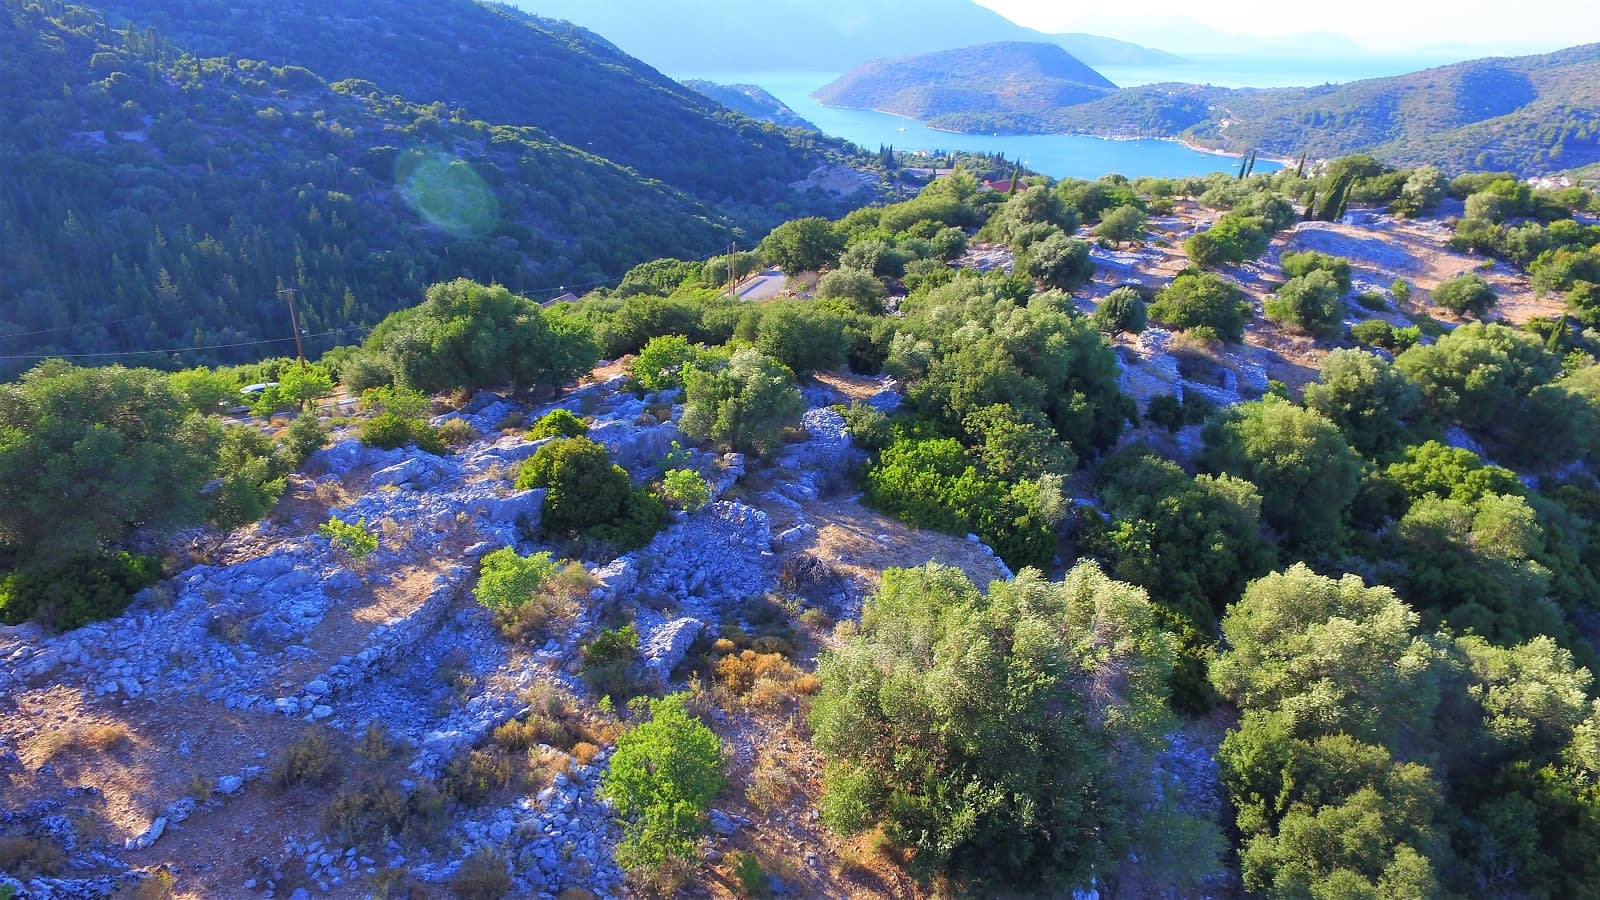 Landscape and terrain of property for sale in Ithaca Greece Perachori